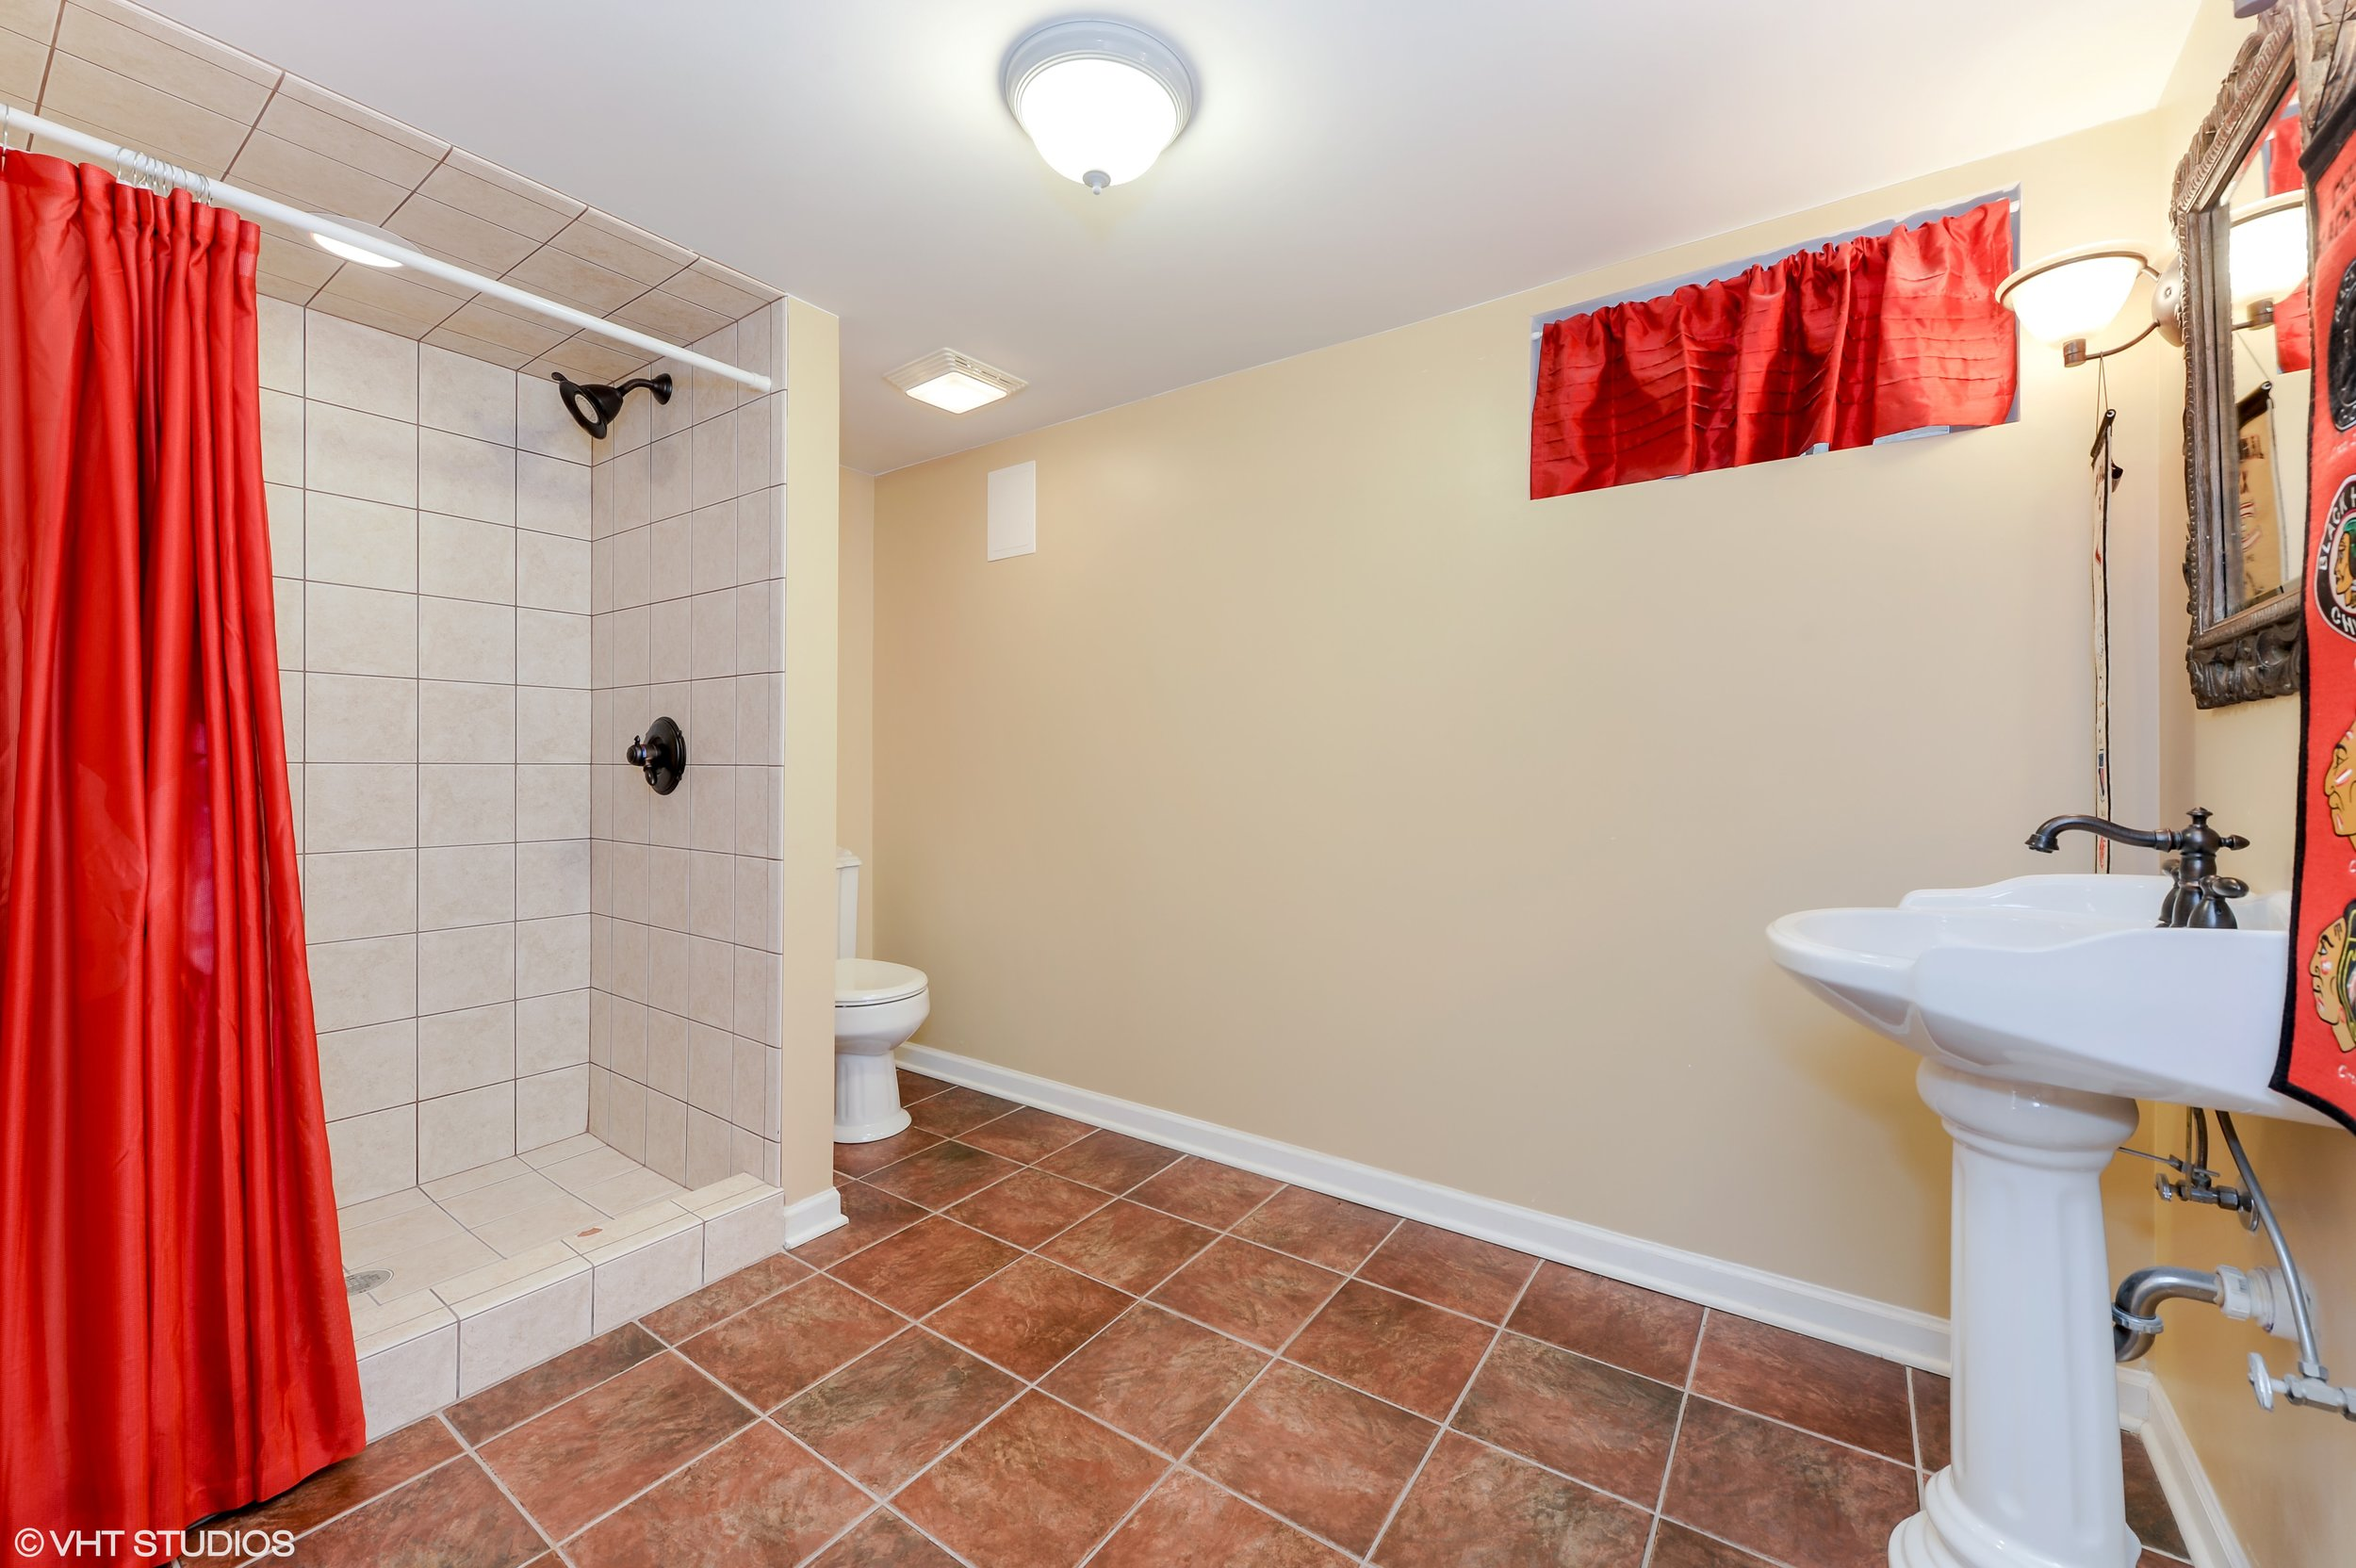 16_6075NorthNaplesAve_11_4thBathroom_HiRes.jpg